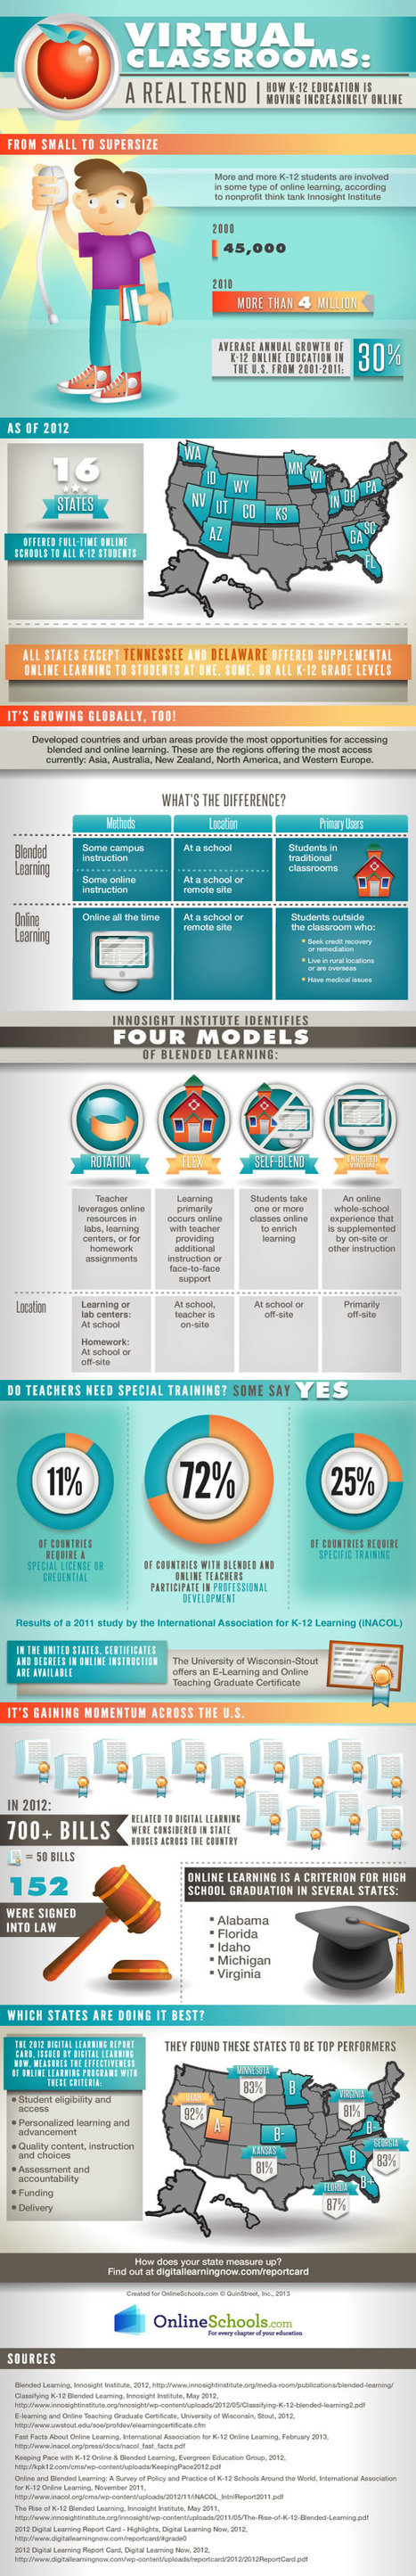 The Teacher's Quick Guide To Blended Learning [Infographic] | Education Matters - (tech and non-tech) | Scoop.it